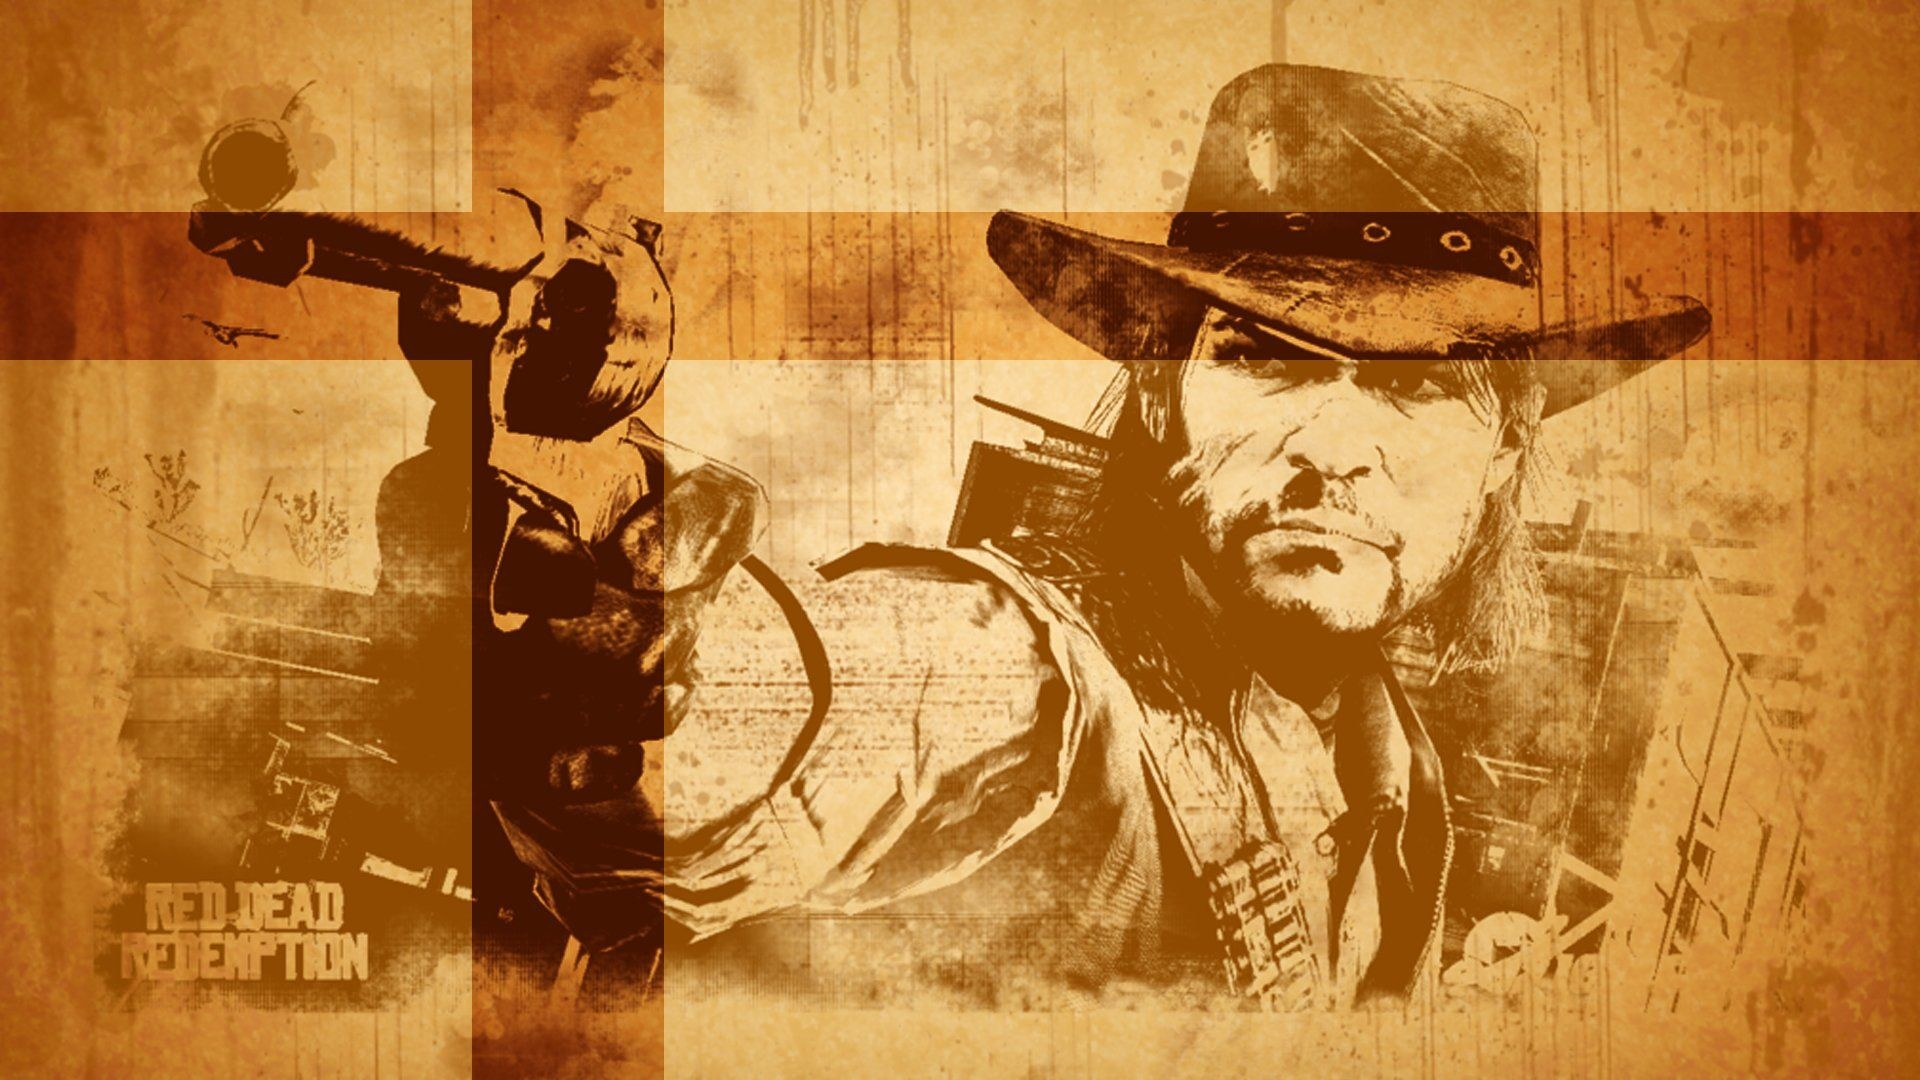 Res: 1920x1080, THE GOOD THE BAD AND THE UGLY western rw wallpaper | 1680x1050 .